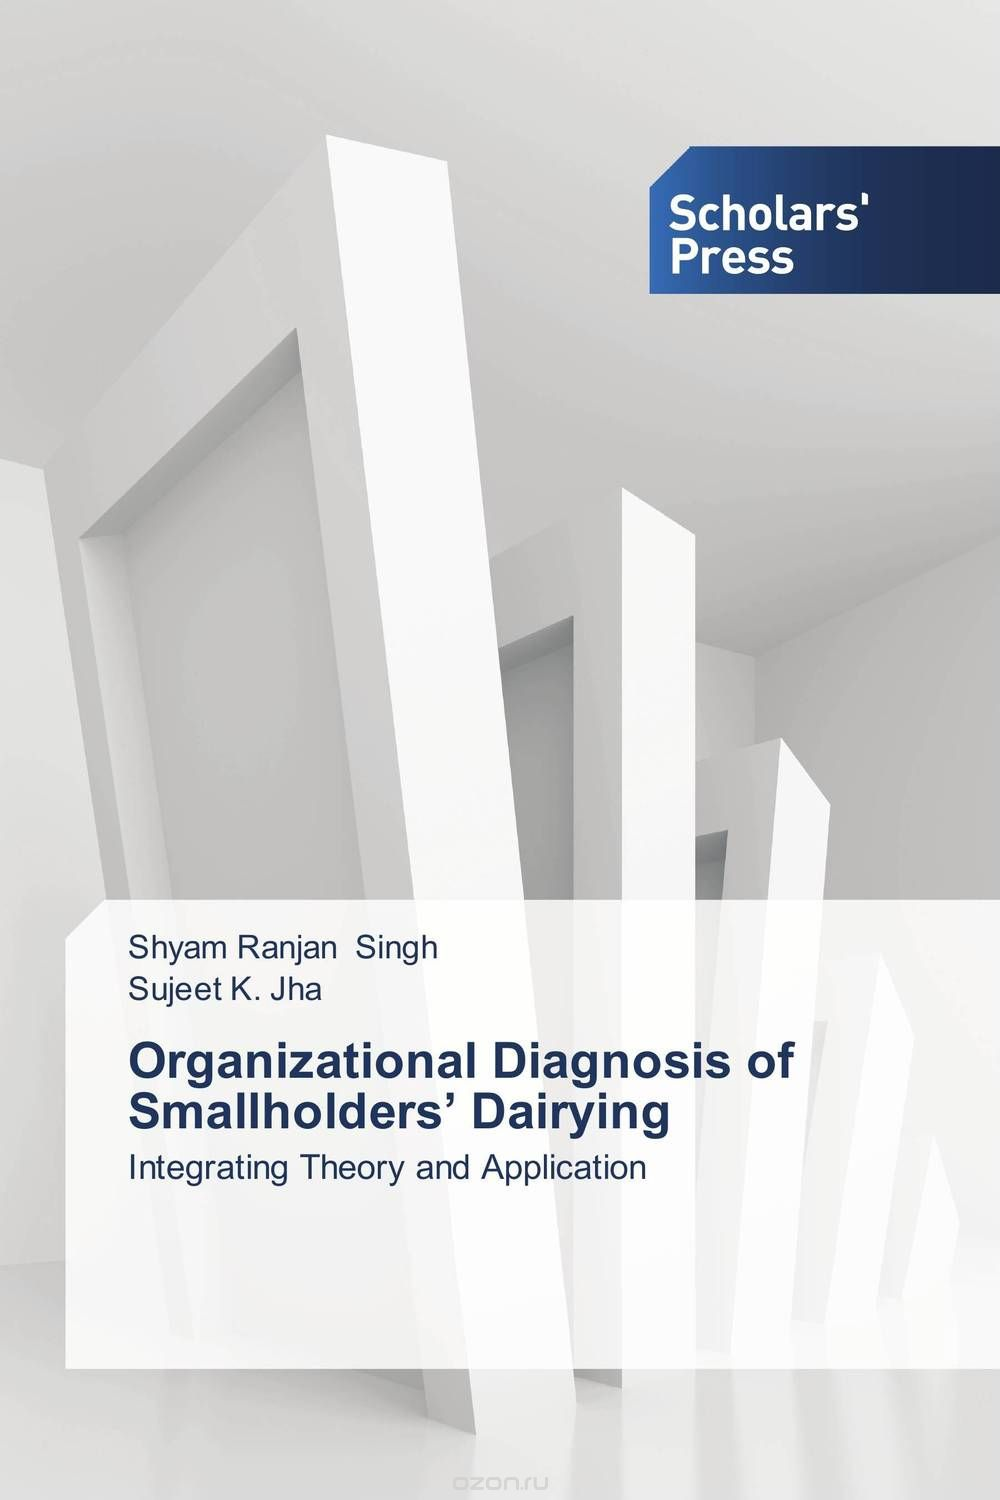 Organizational Diagnosis of Smallholders' Dairying